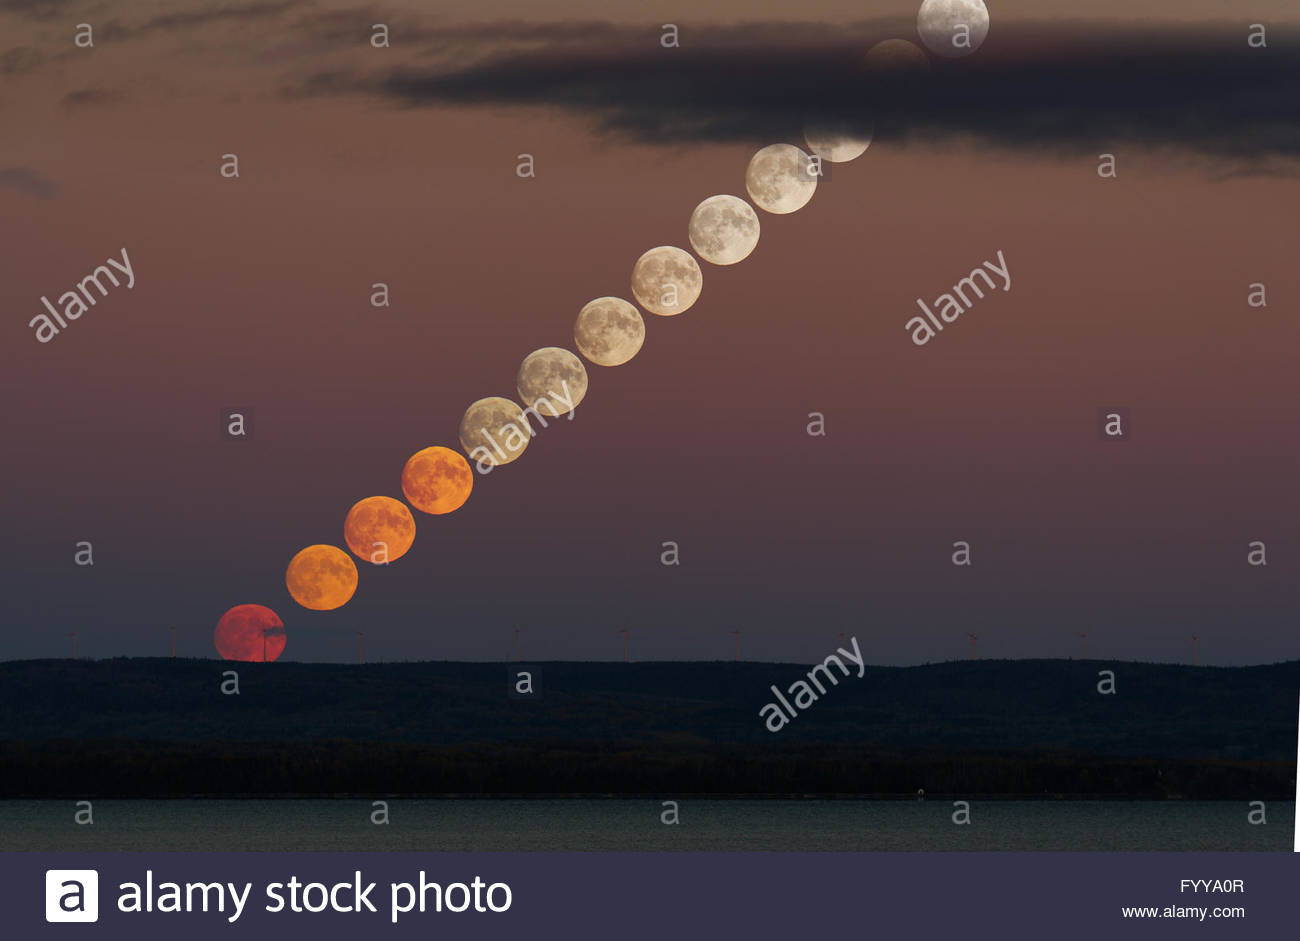 moonrise-sequence-FYYA0R.jpg